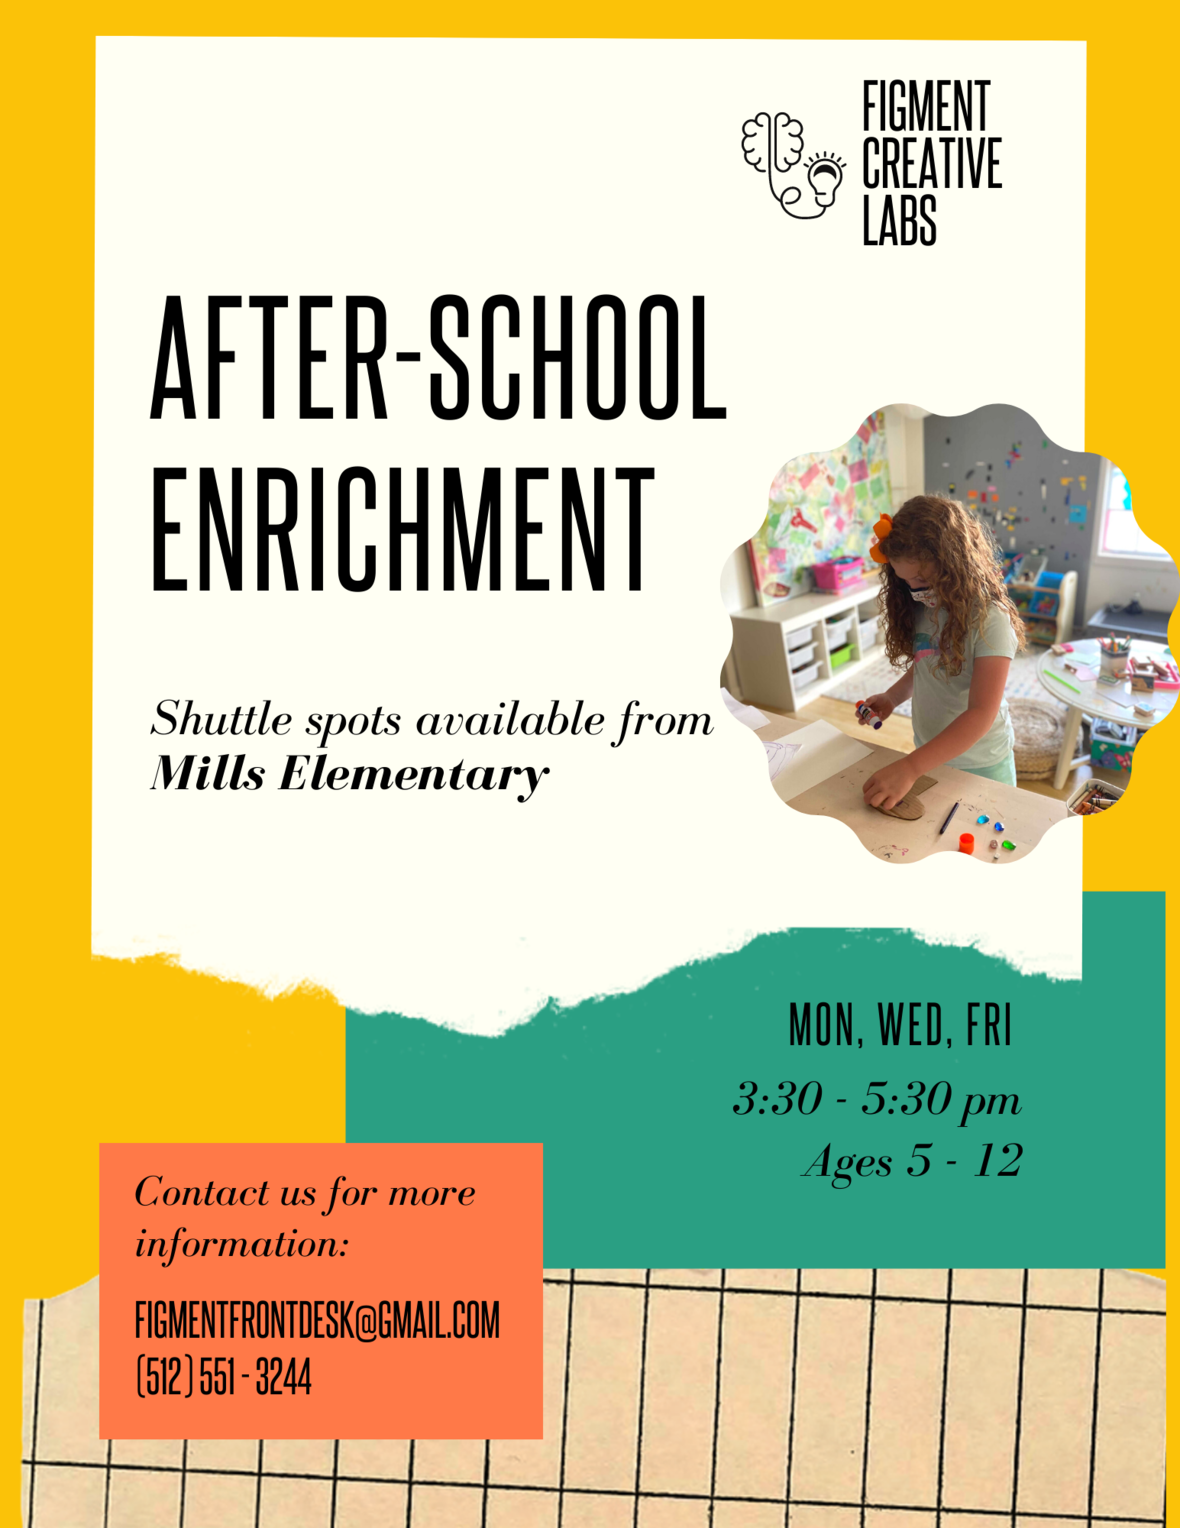 After-school Enrichment at Figment with shuttle